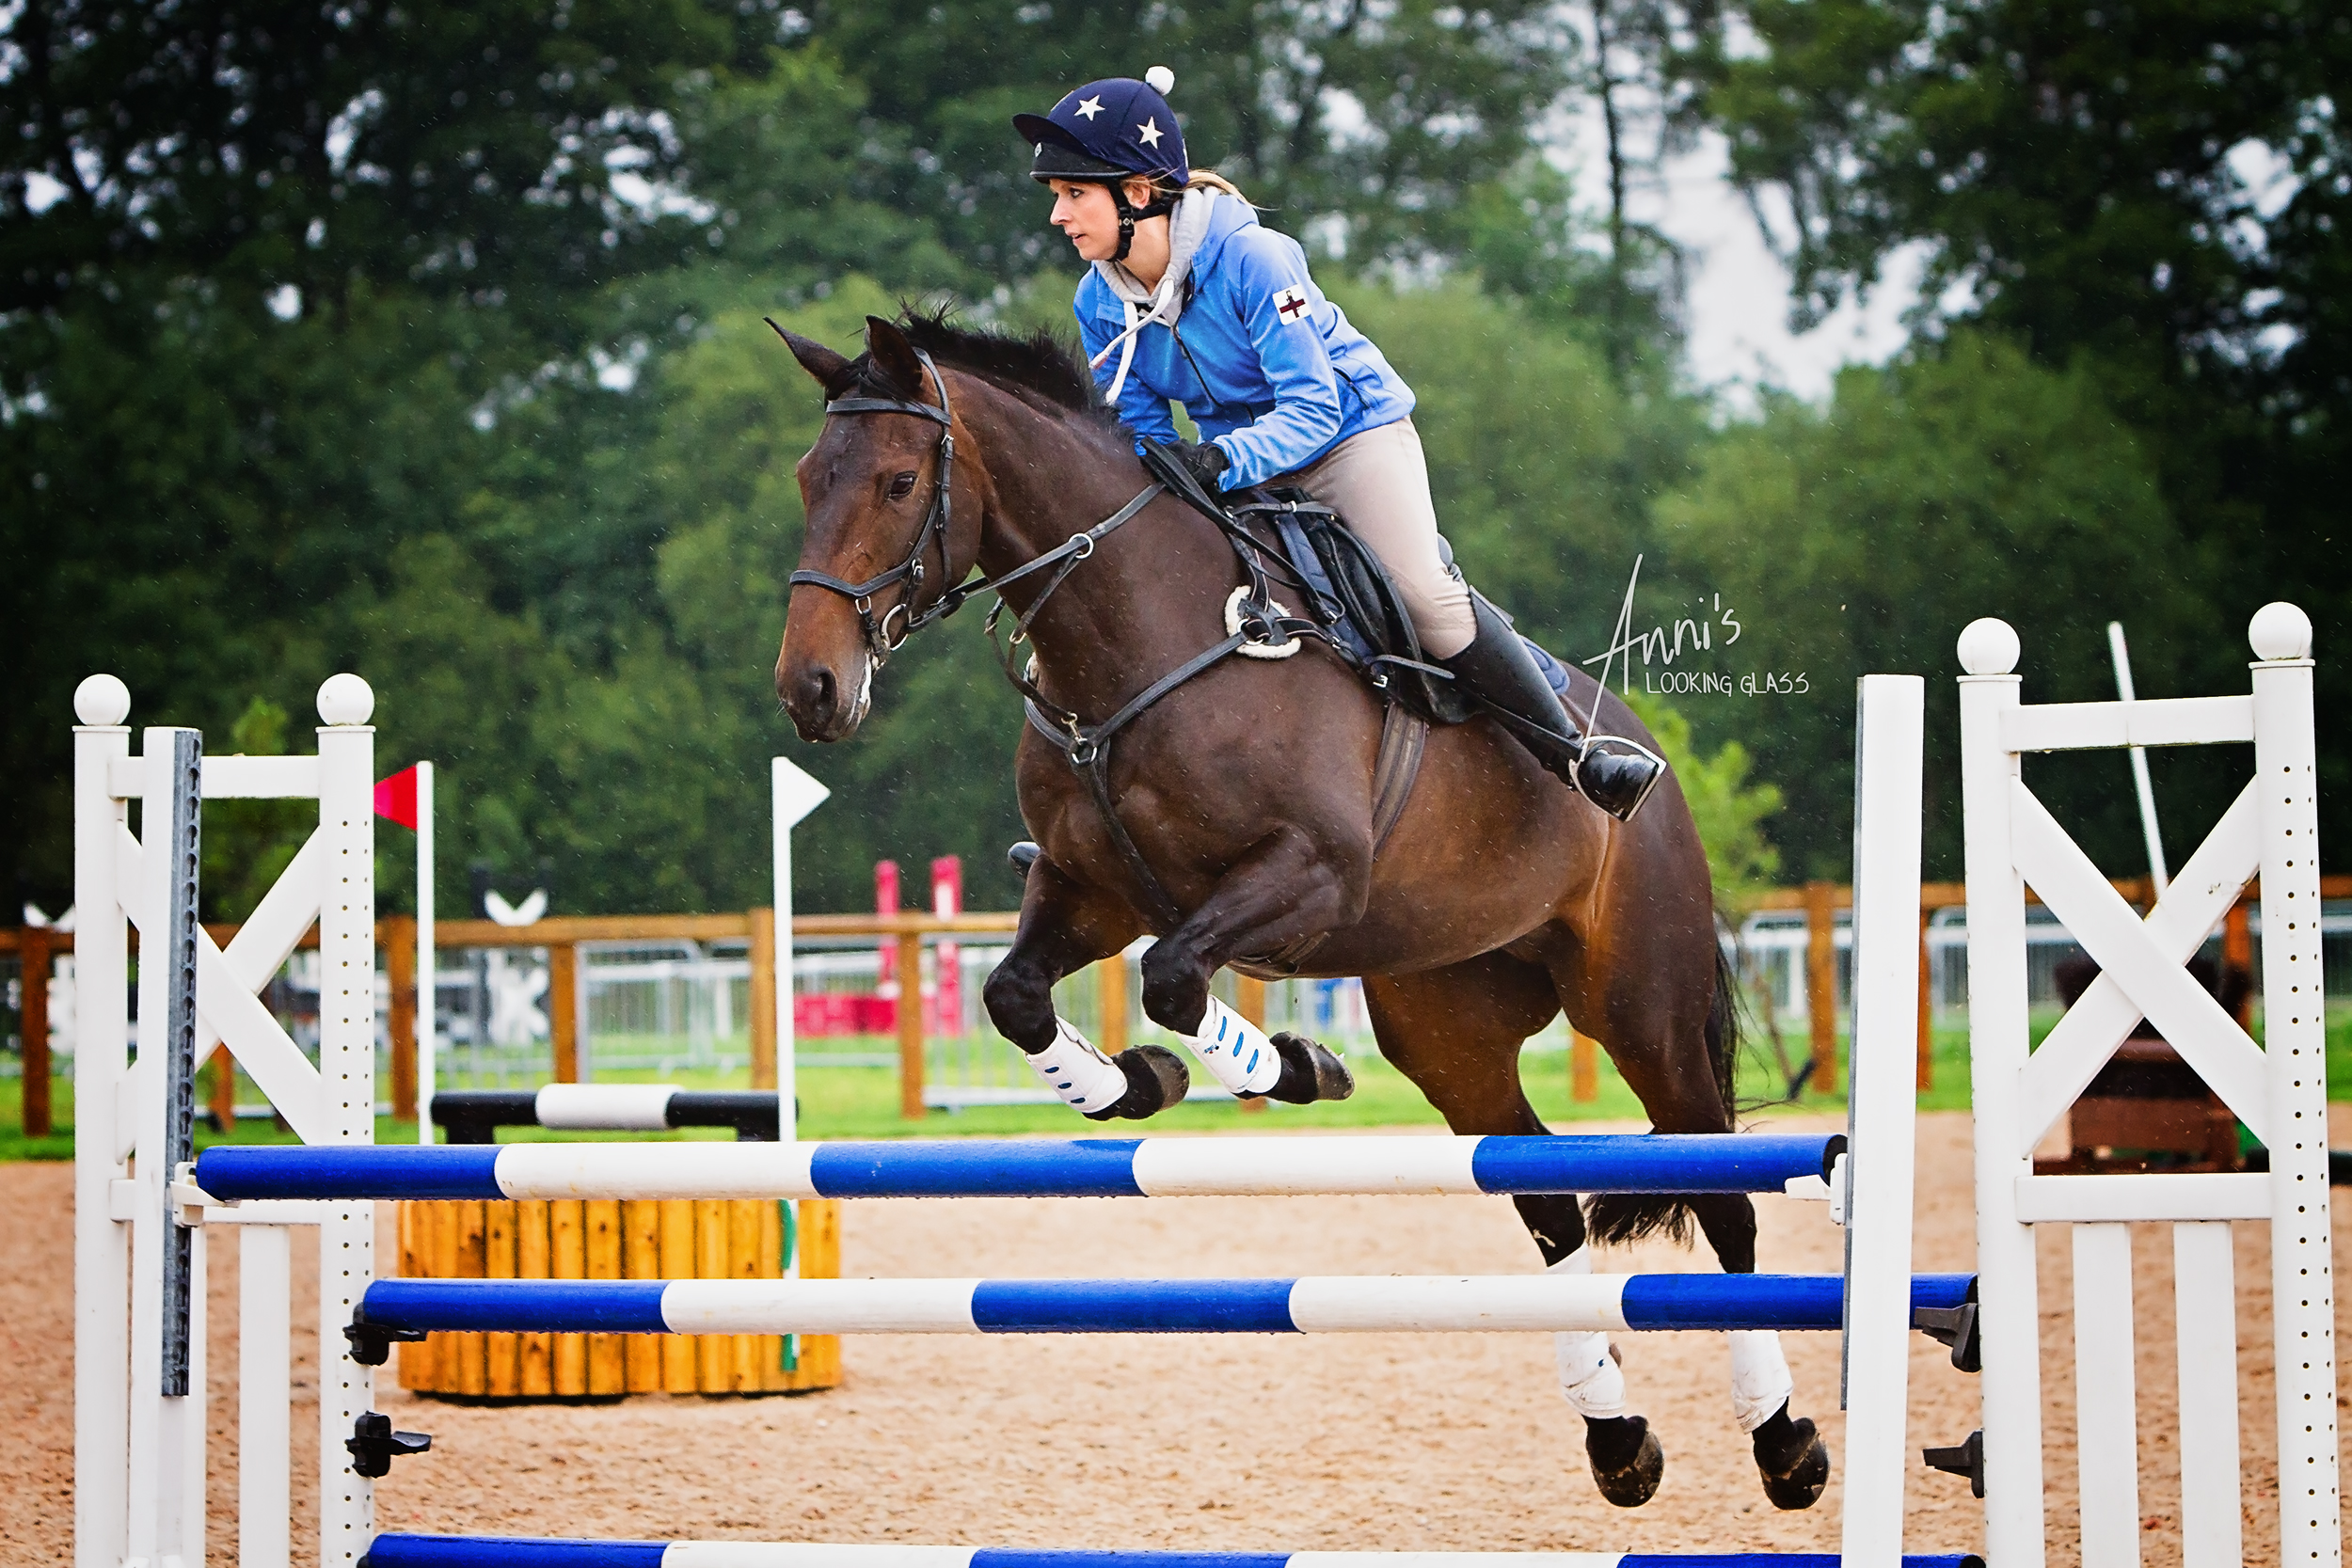 Eventing requires skill: I was fascinated by the spatial awareness of the riders and the horses' surefootedness on slippery ground.